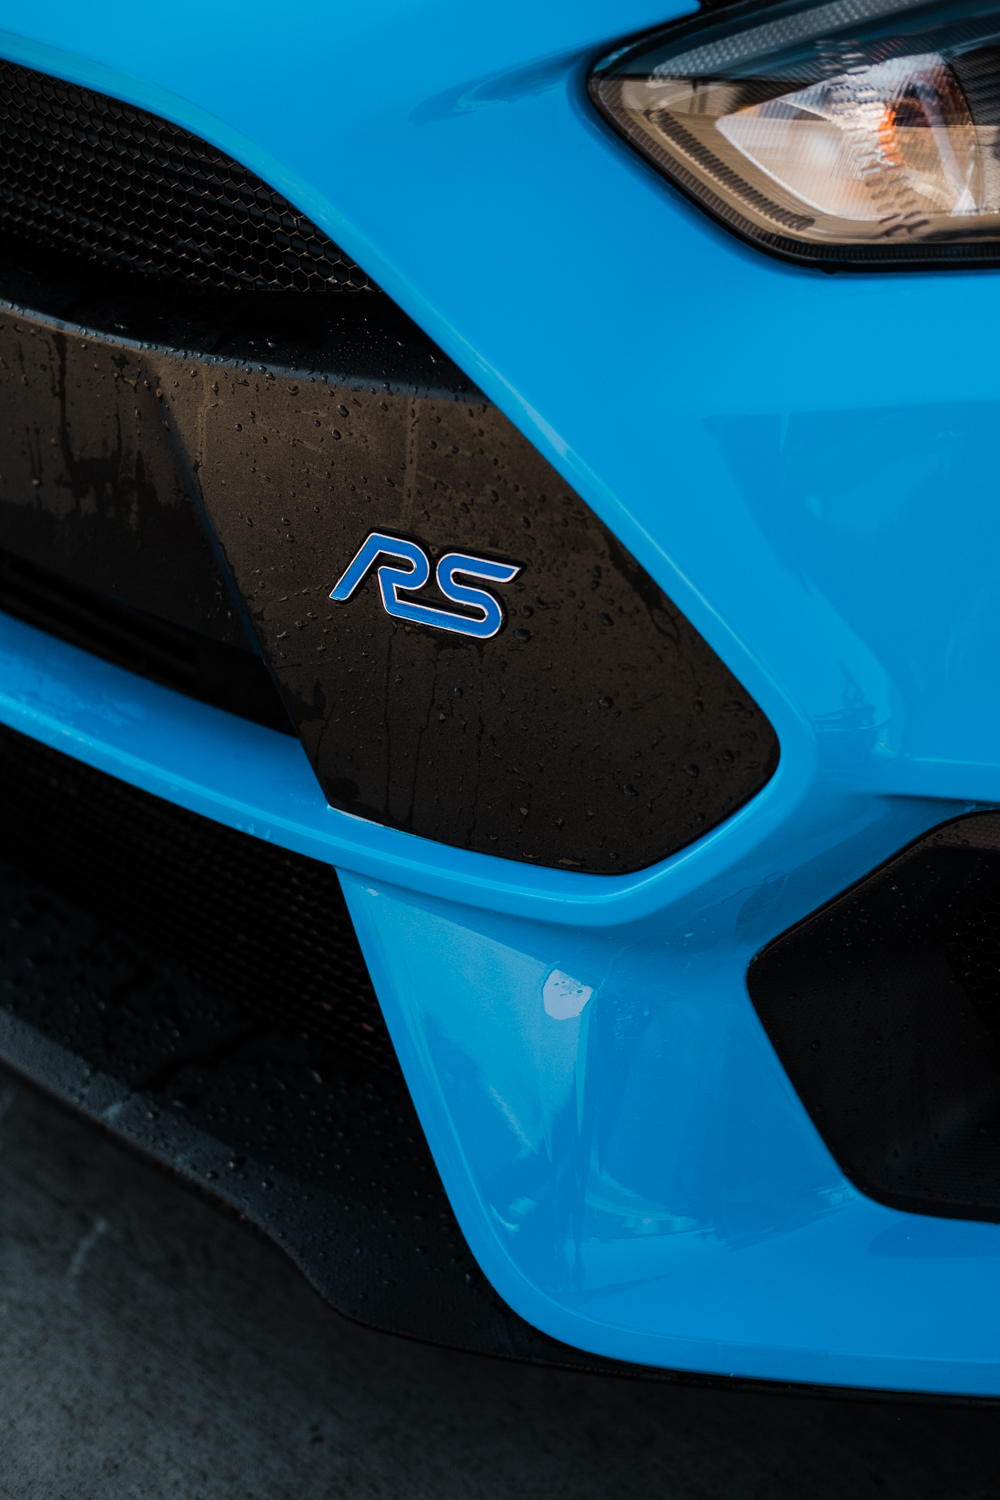 Ford Focus RS-XPEL Ultimate Paint Protection Film-Car Wash-Car Detailing-Paint Protection Film-Clear Bra-Ford Performance-103.jpg